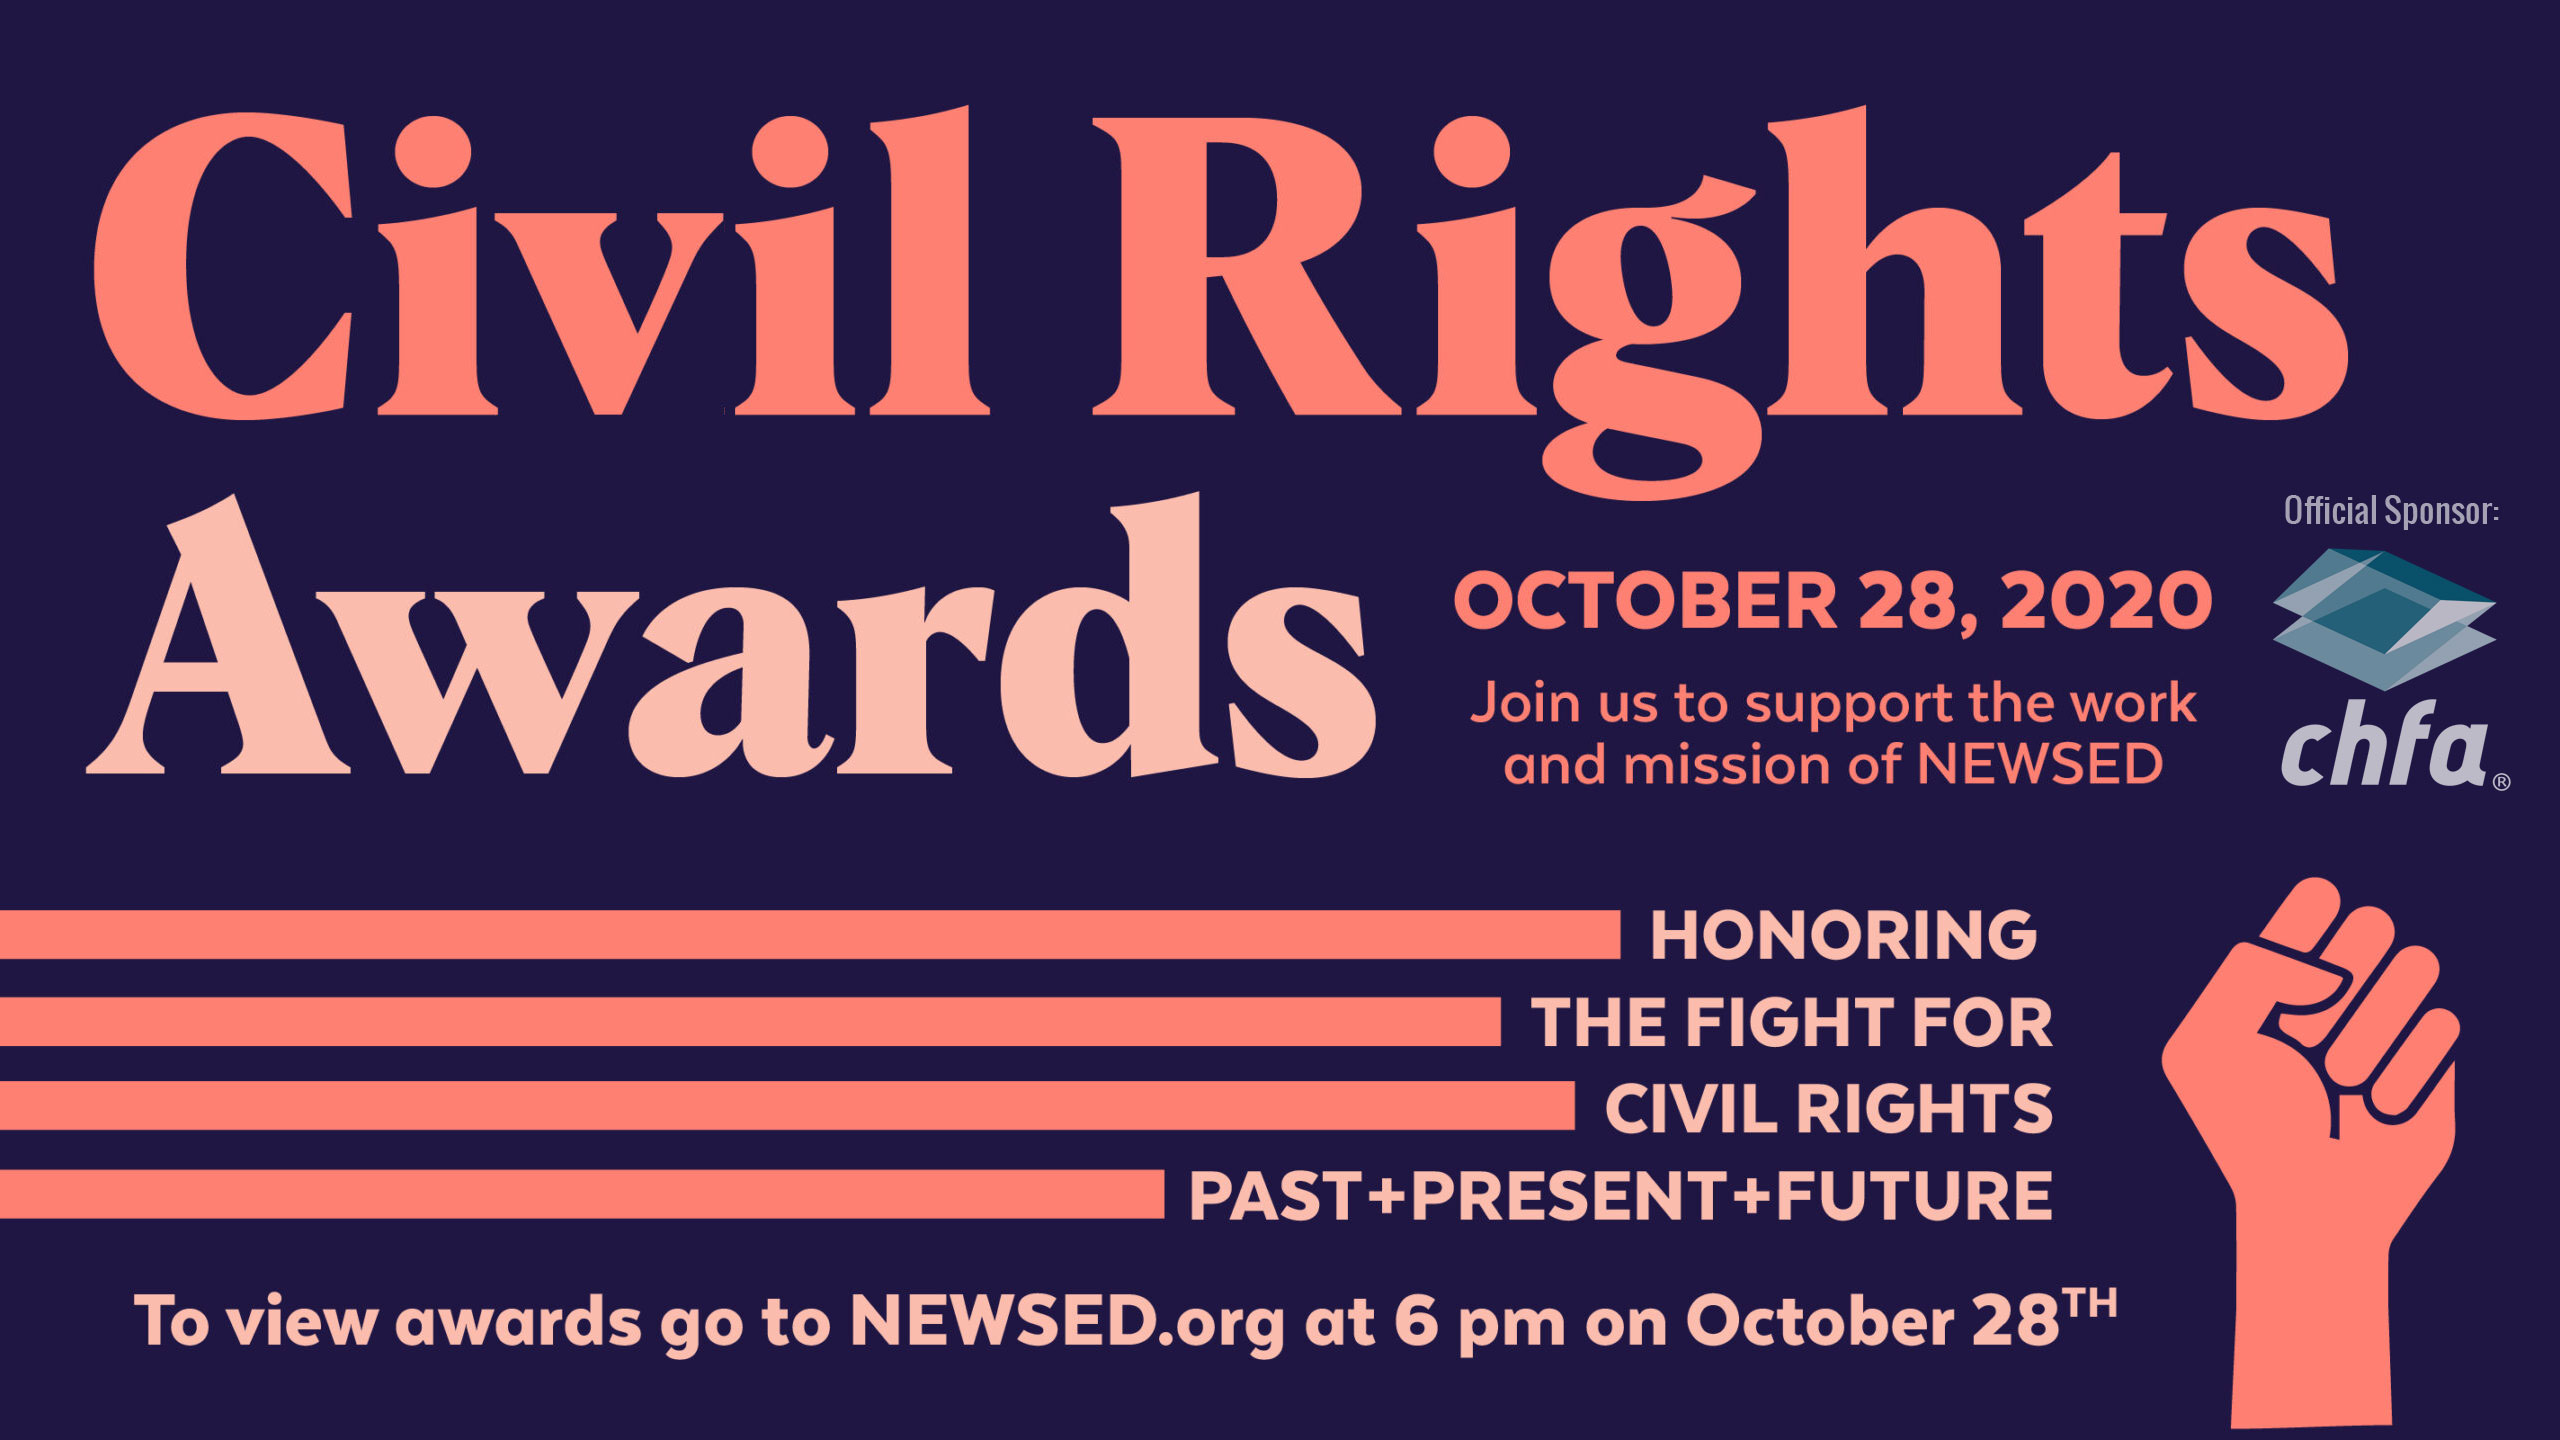 Civil Rights Awards 2020 - October 28 virtual event